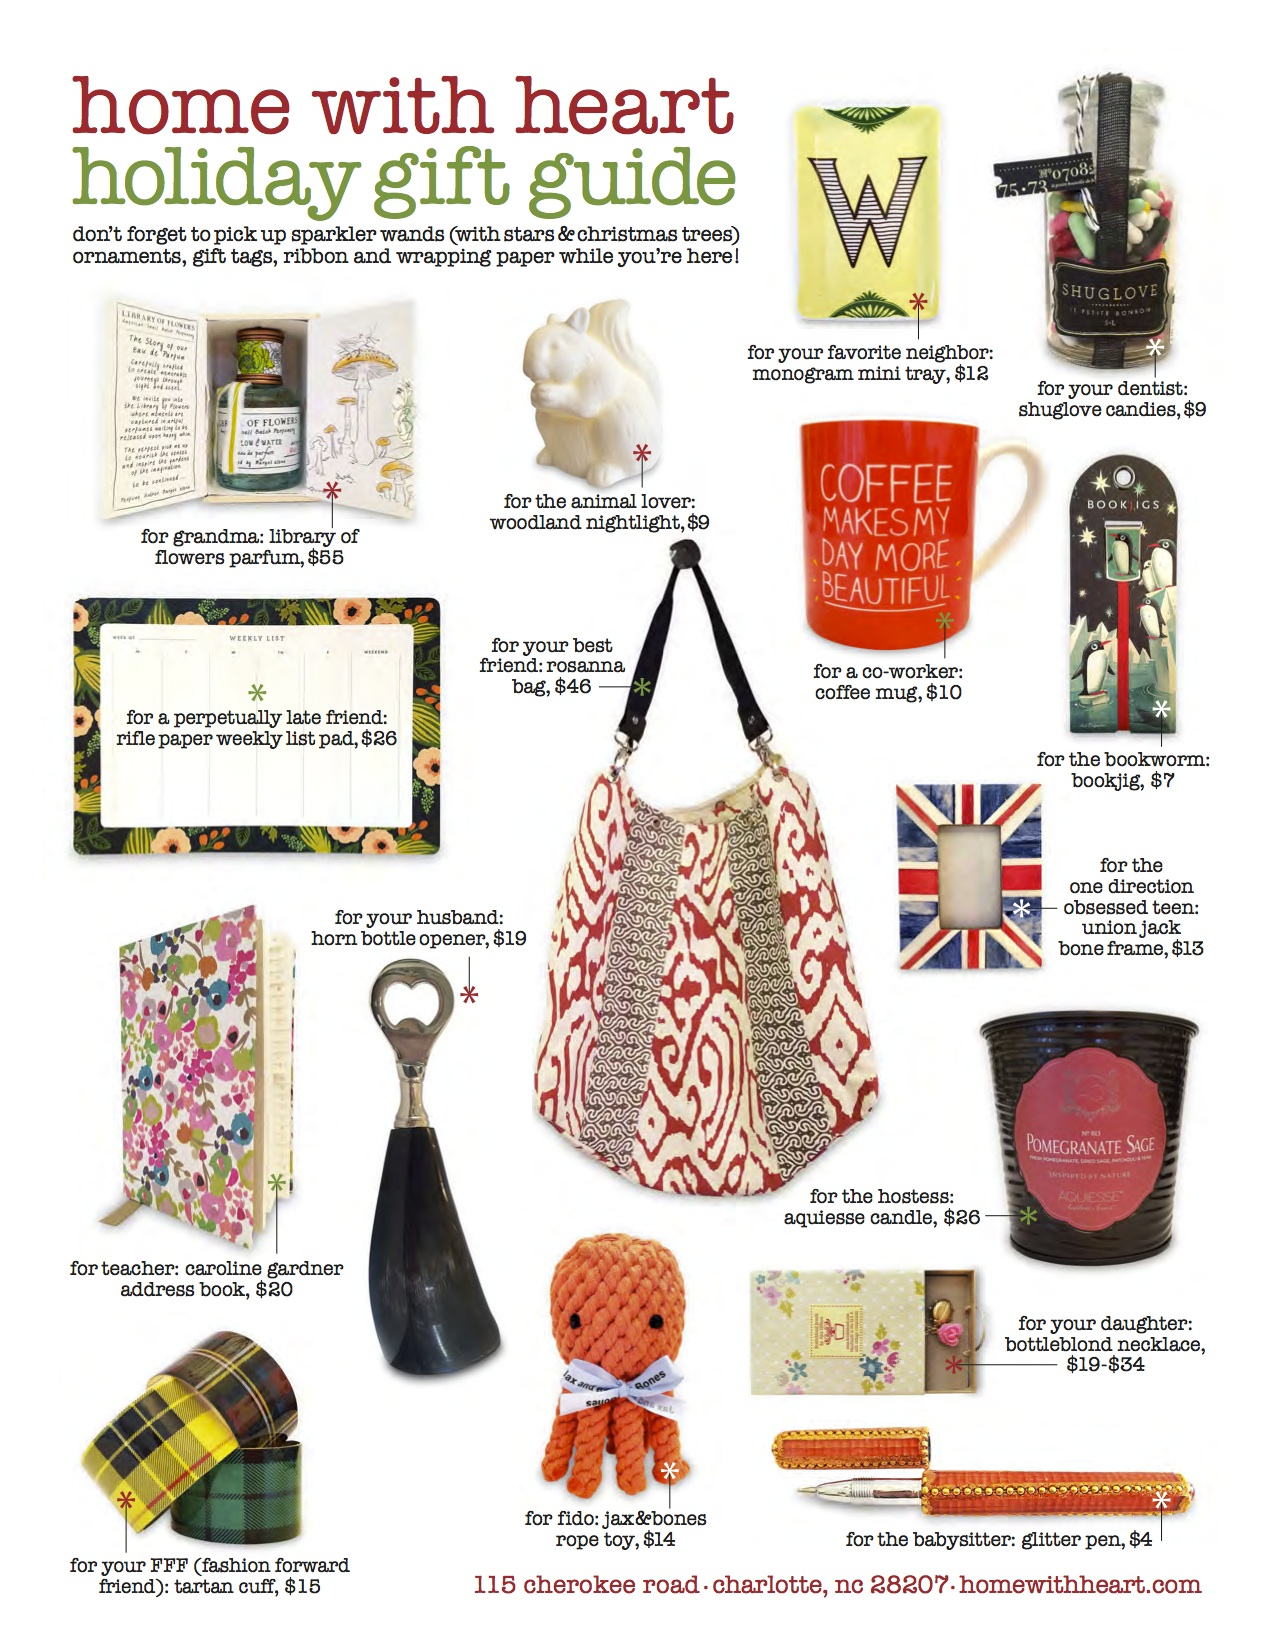 HOME WITH HEART GIFT GUIDE 2013.LO.jpg